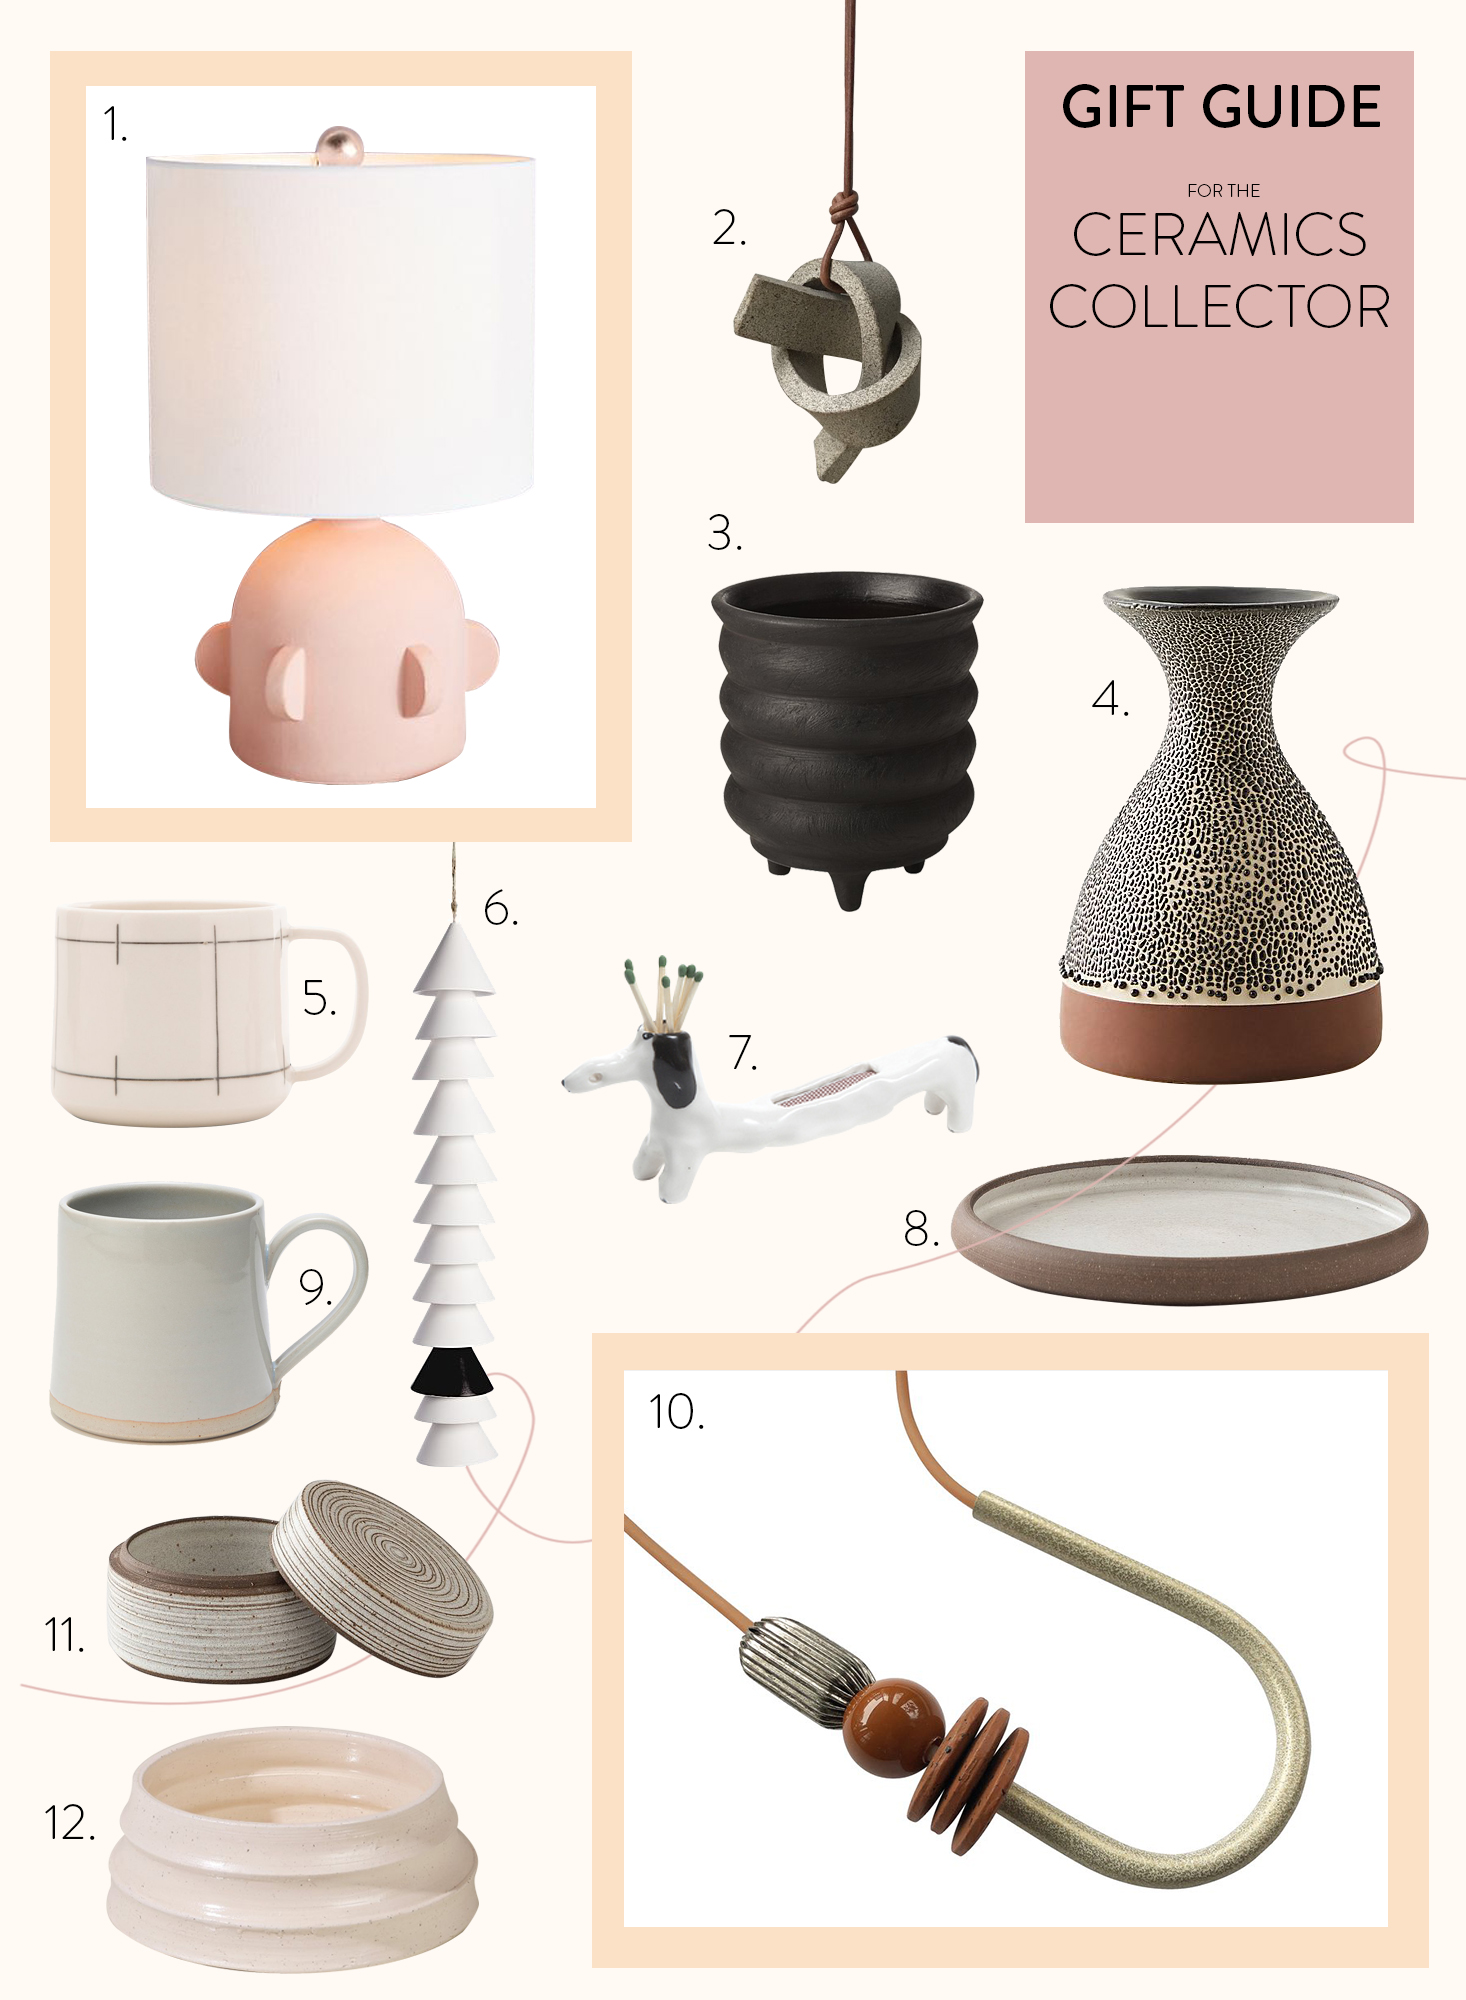 Gift Guide For the Ceramics Collector